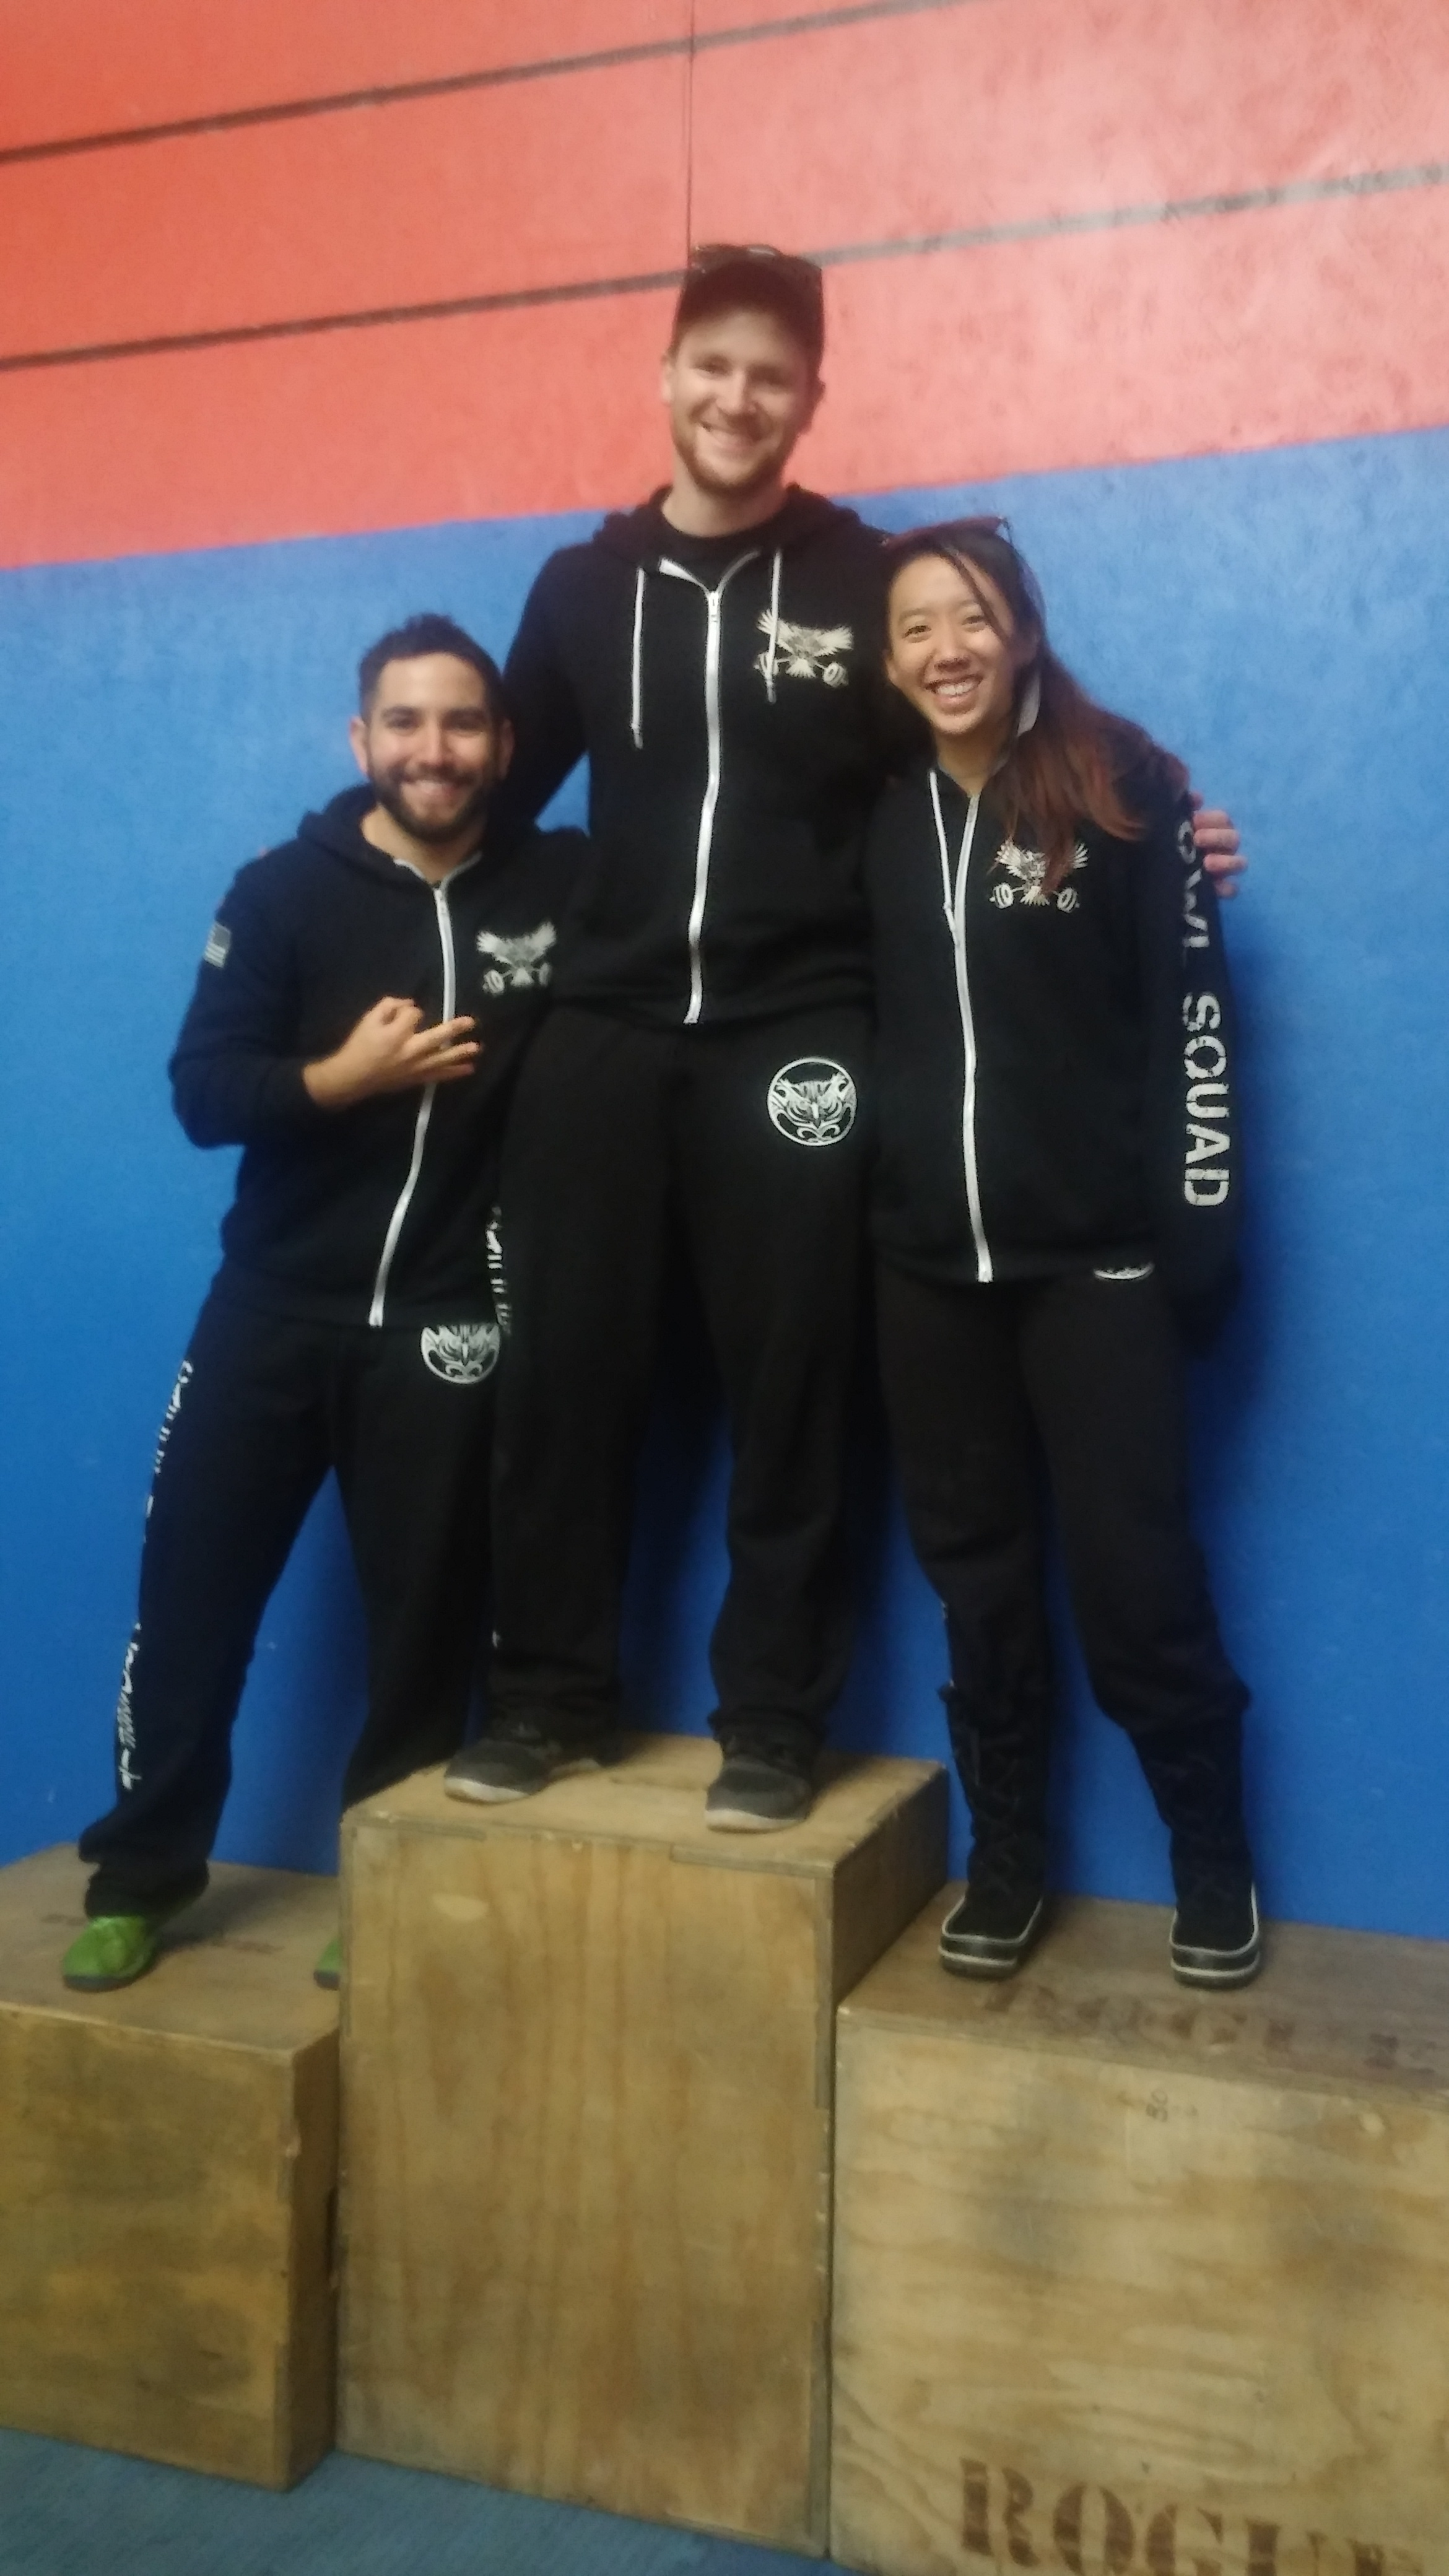 Caffeinated CrossFit at the Reindeer Games Podium